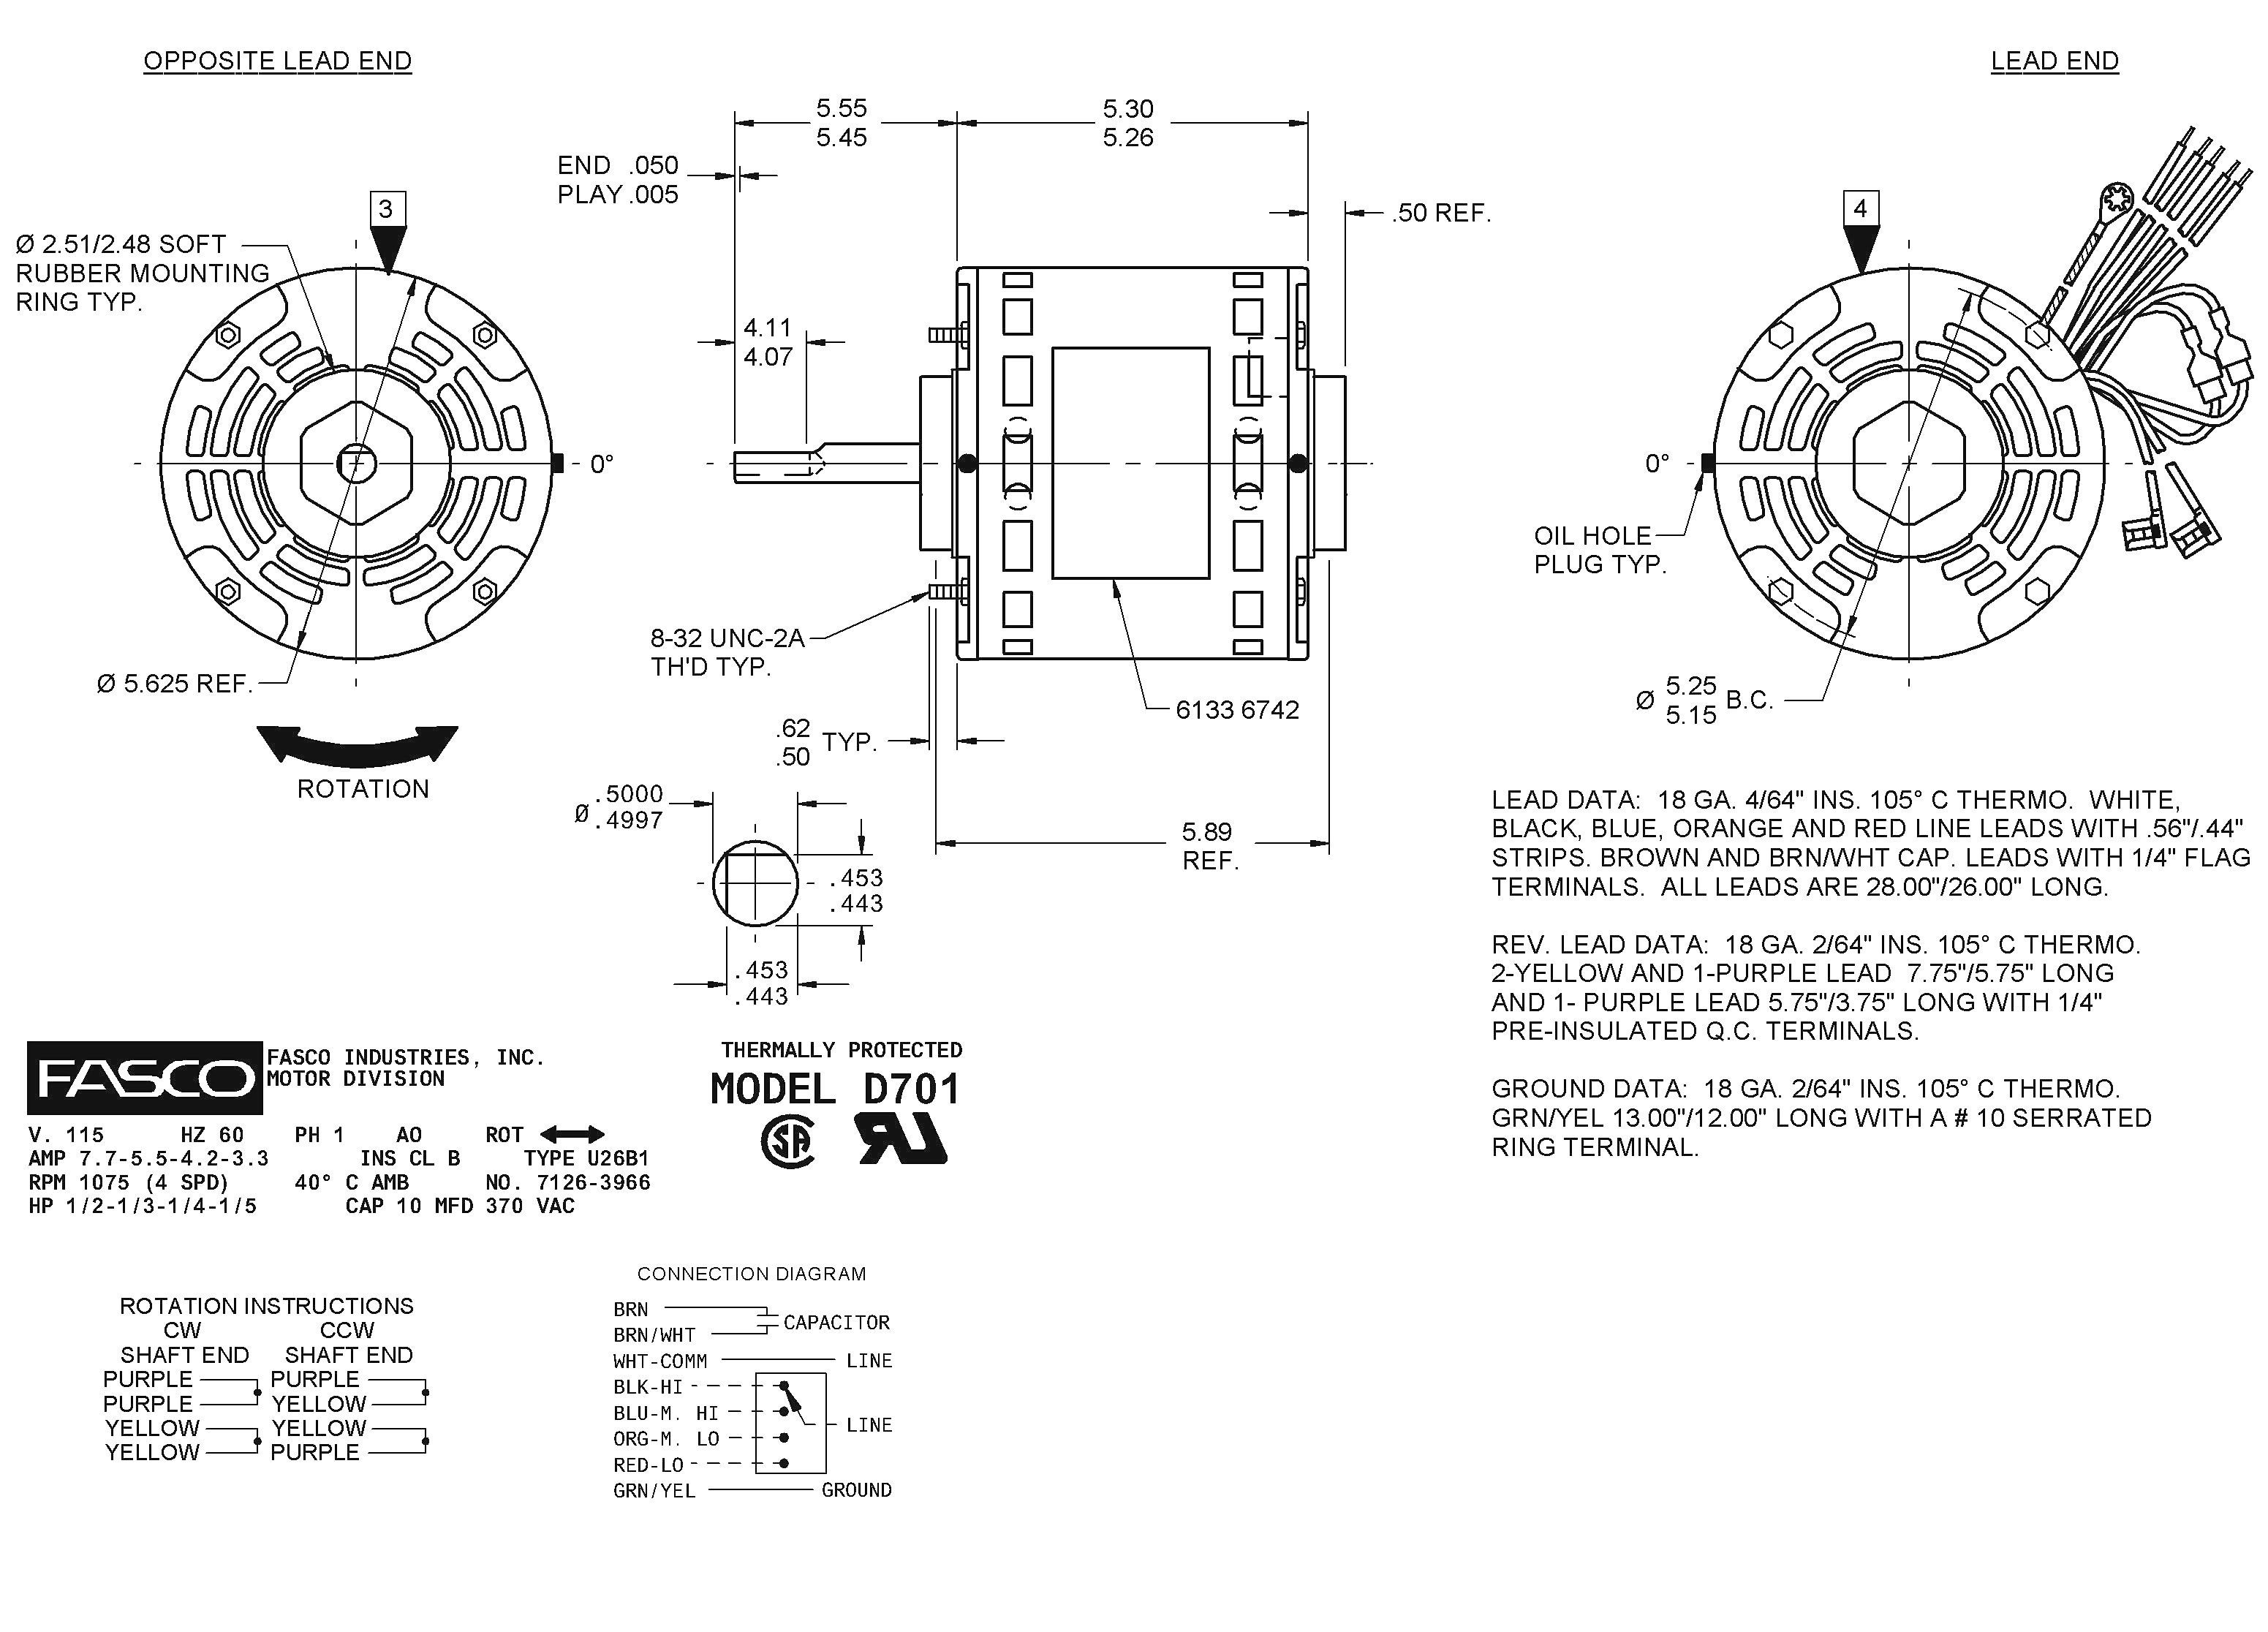 New Wiring Diagram For Ge Electric Motor  Diagram  Diagramsample  Diagramtemplate  Wiringdiagram